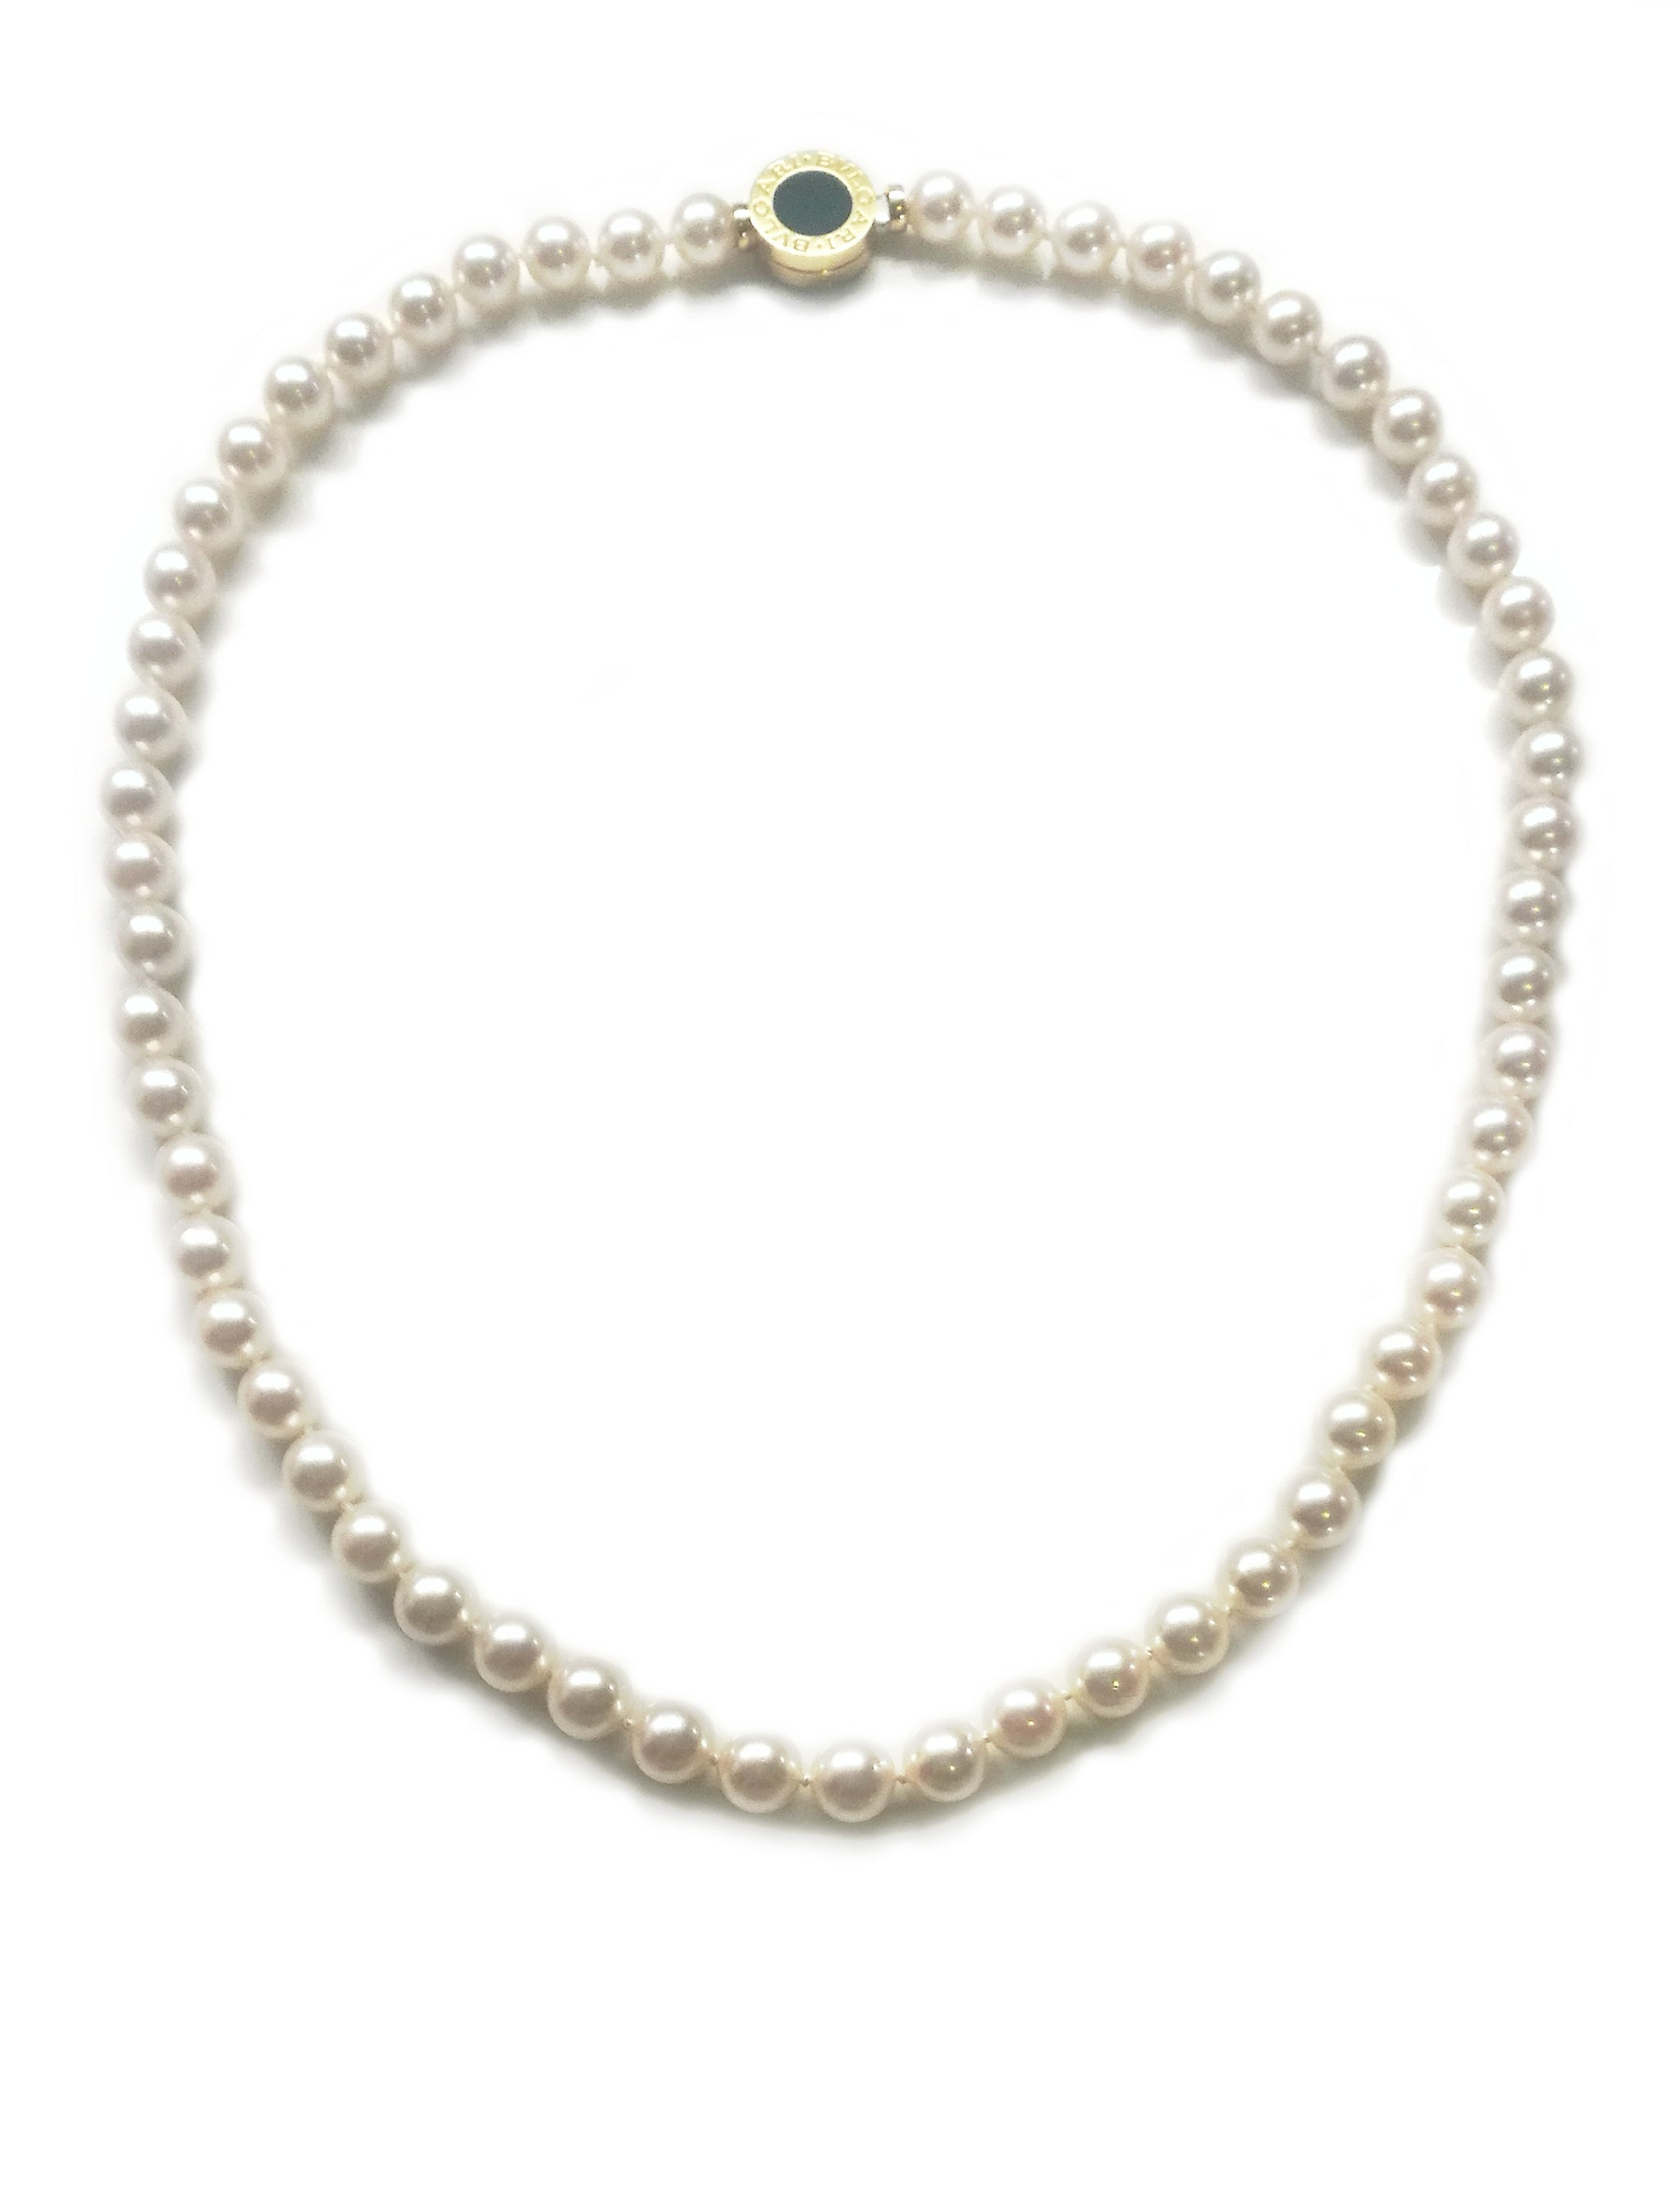 Bulgari Bvlgari 18-inch Pearl & 18k Gold Necklace with Original Case